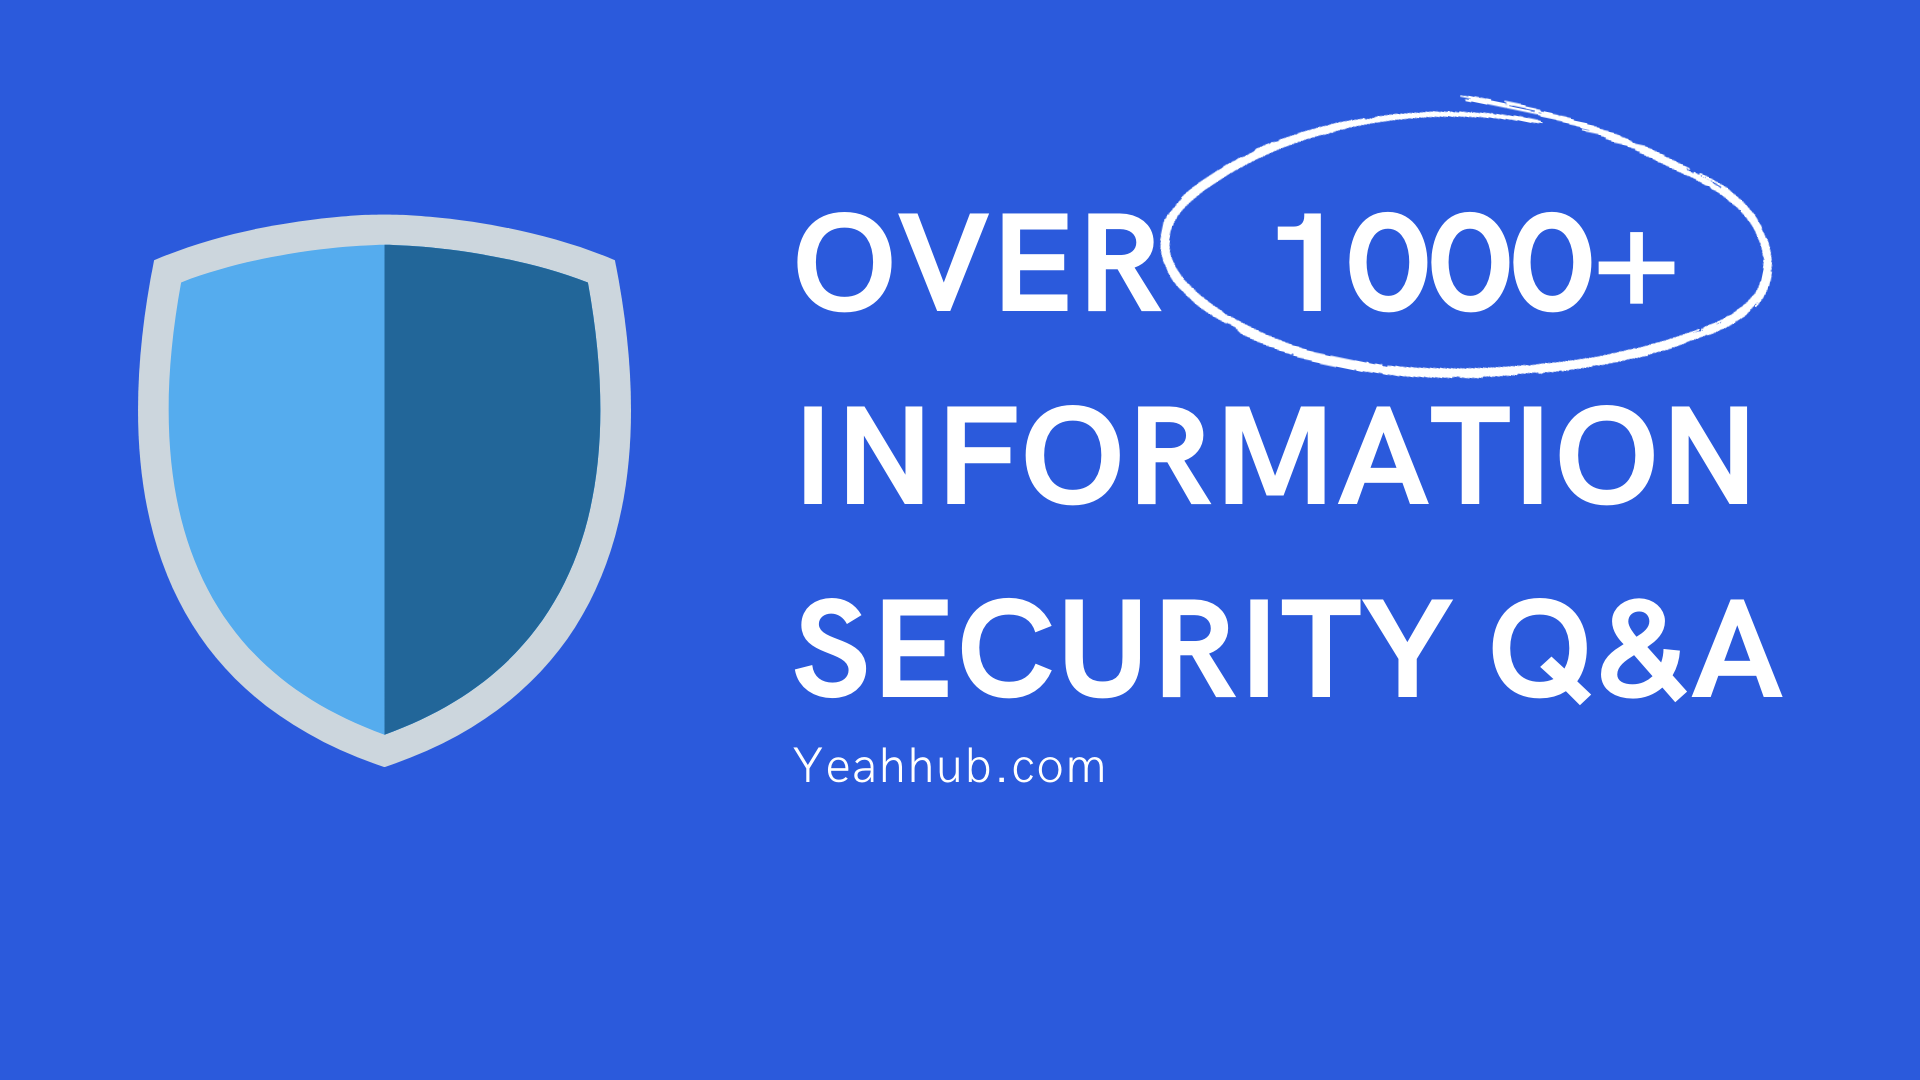 OVER 1000+ INFORMATION SECURITY Q&A